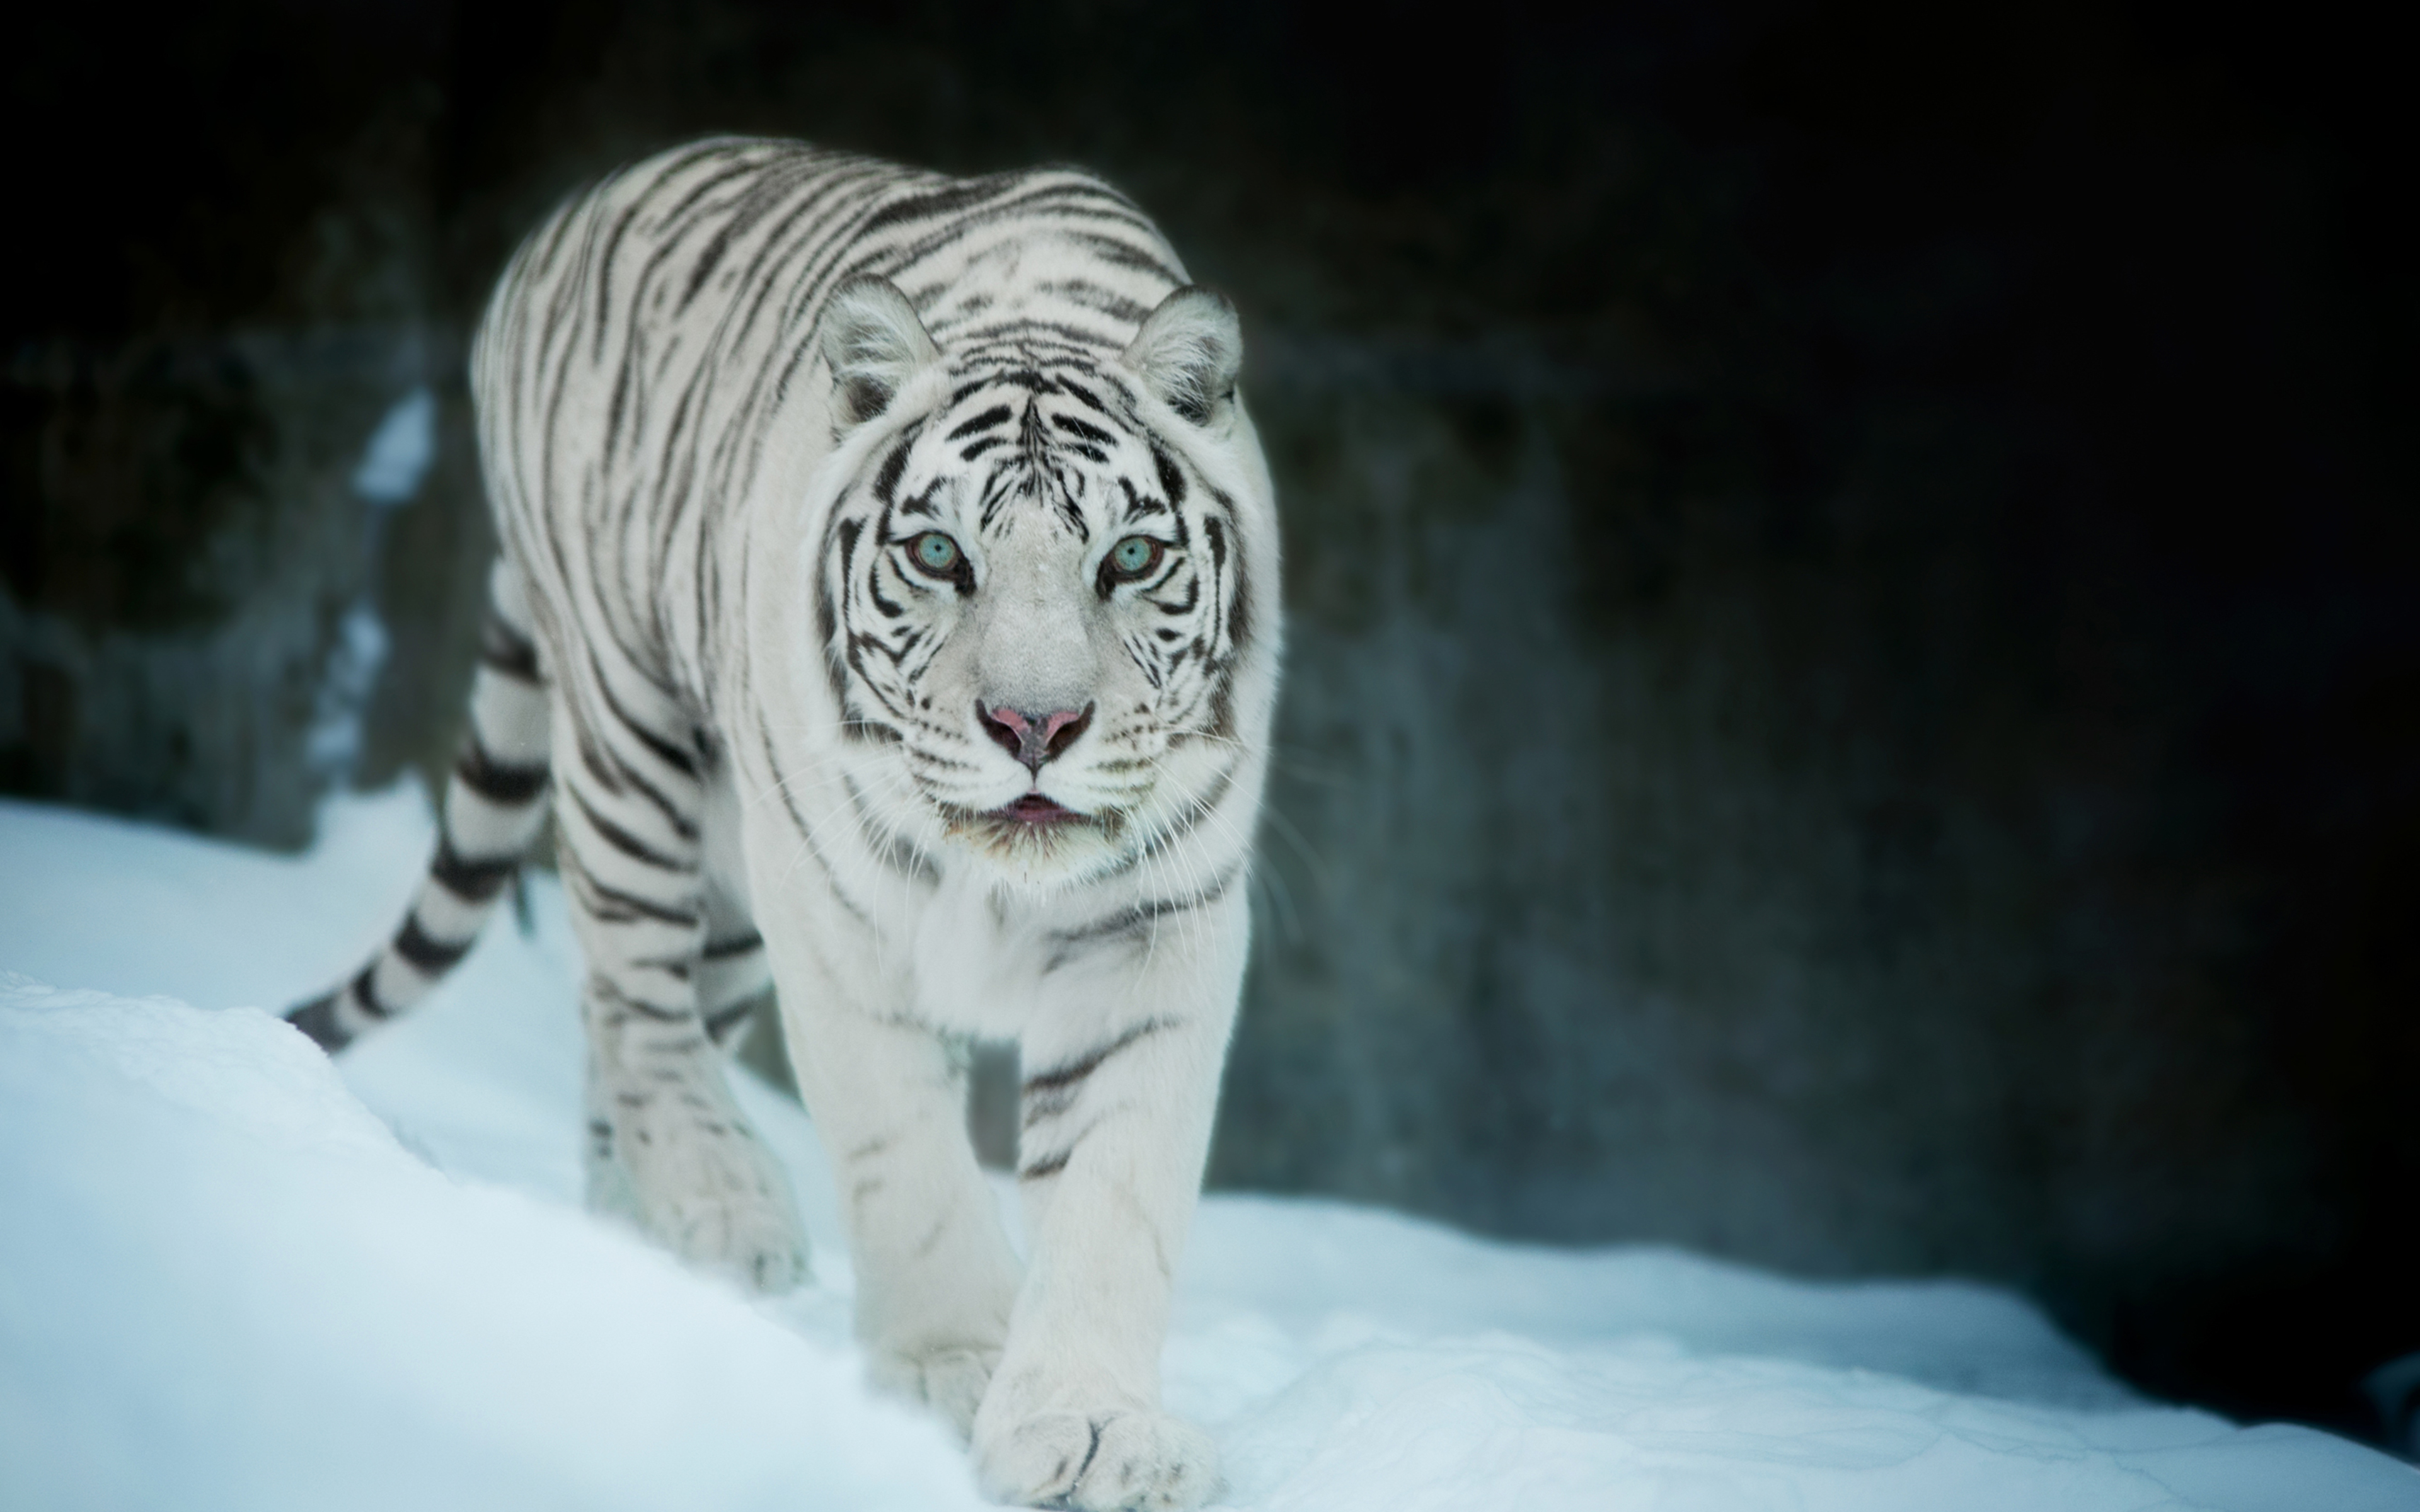 3840x2400 White Tiger In Snow 4k HD 4k Wallpapers, Images ...